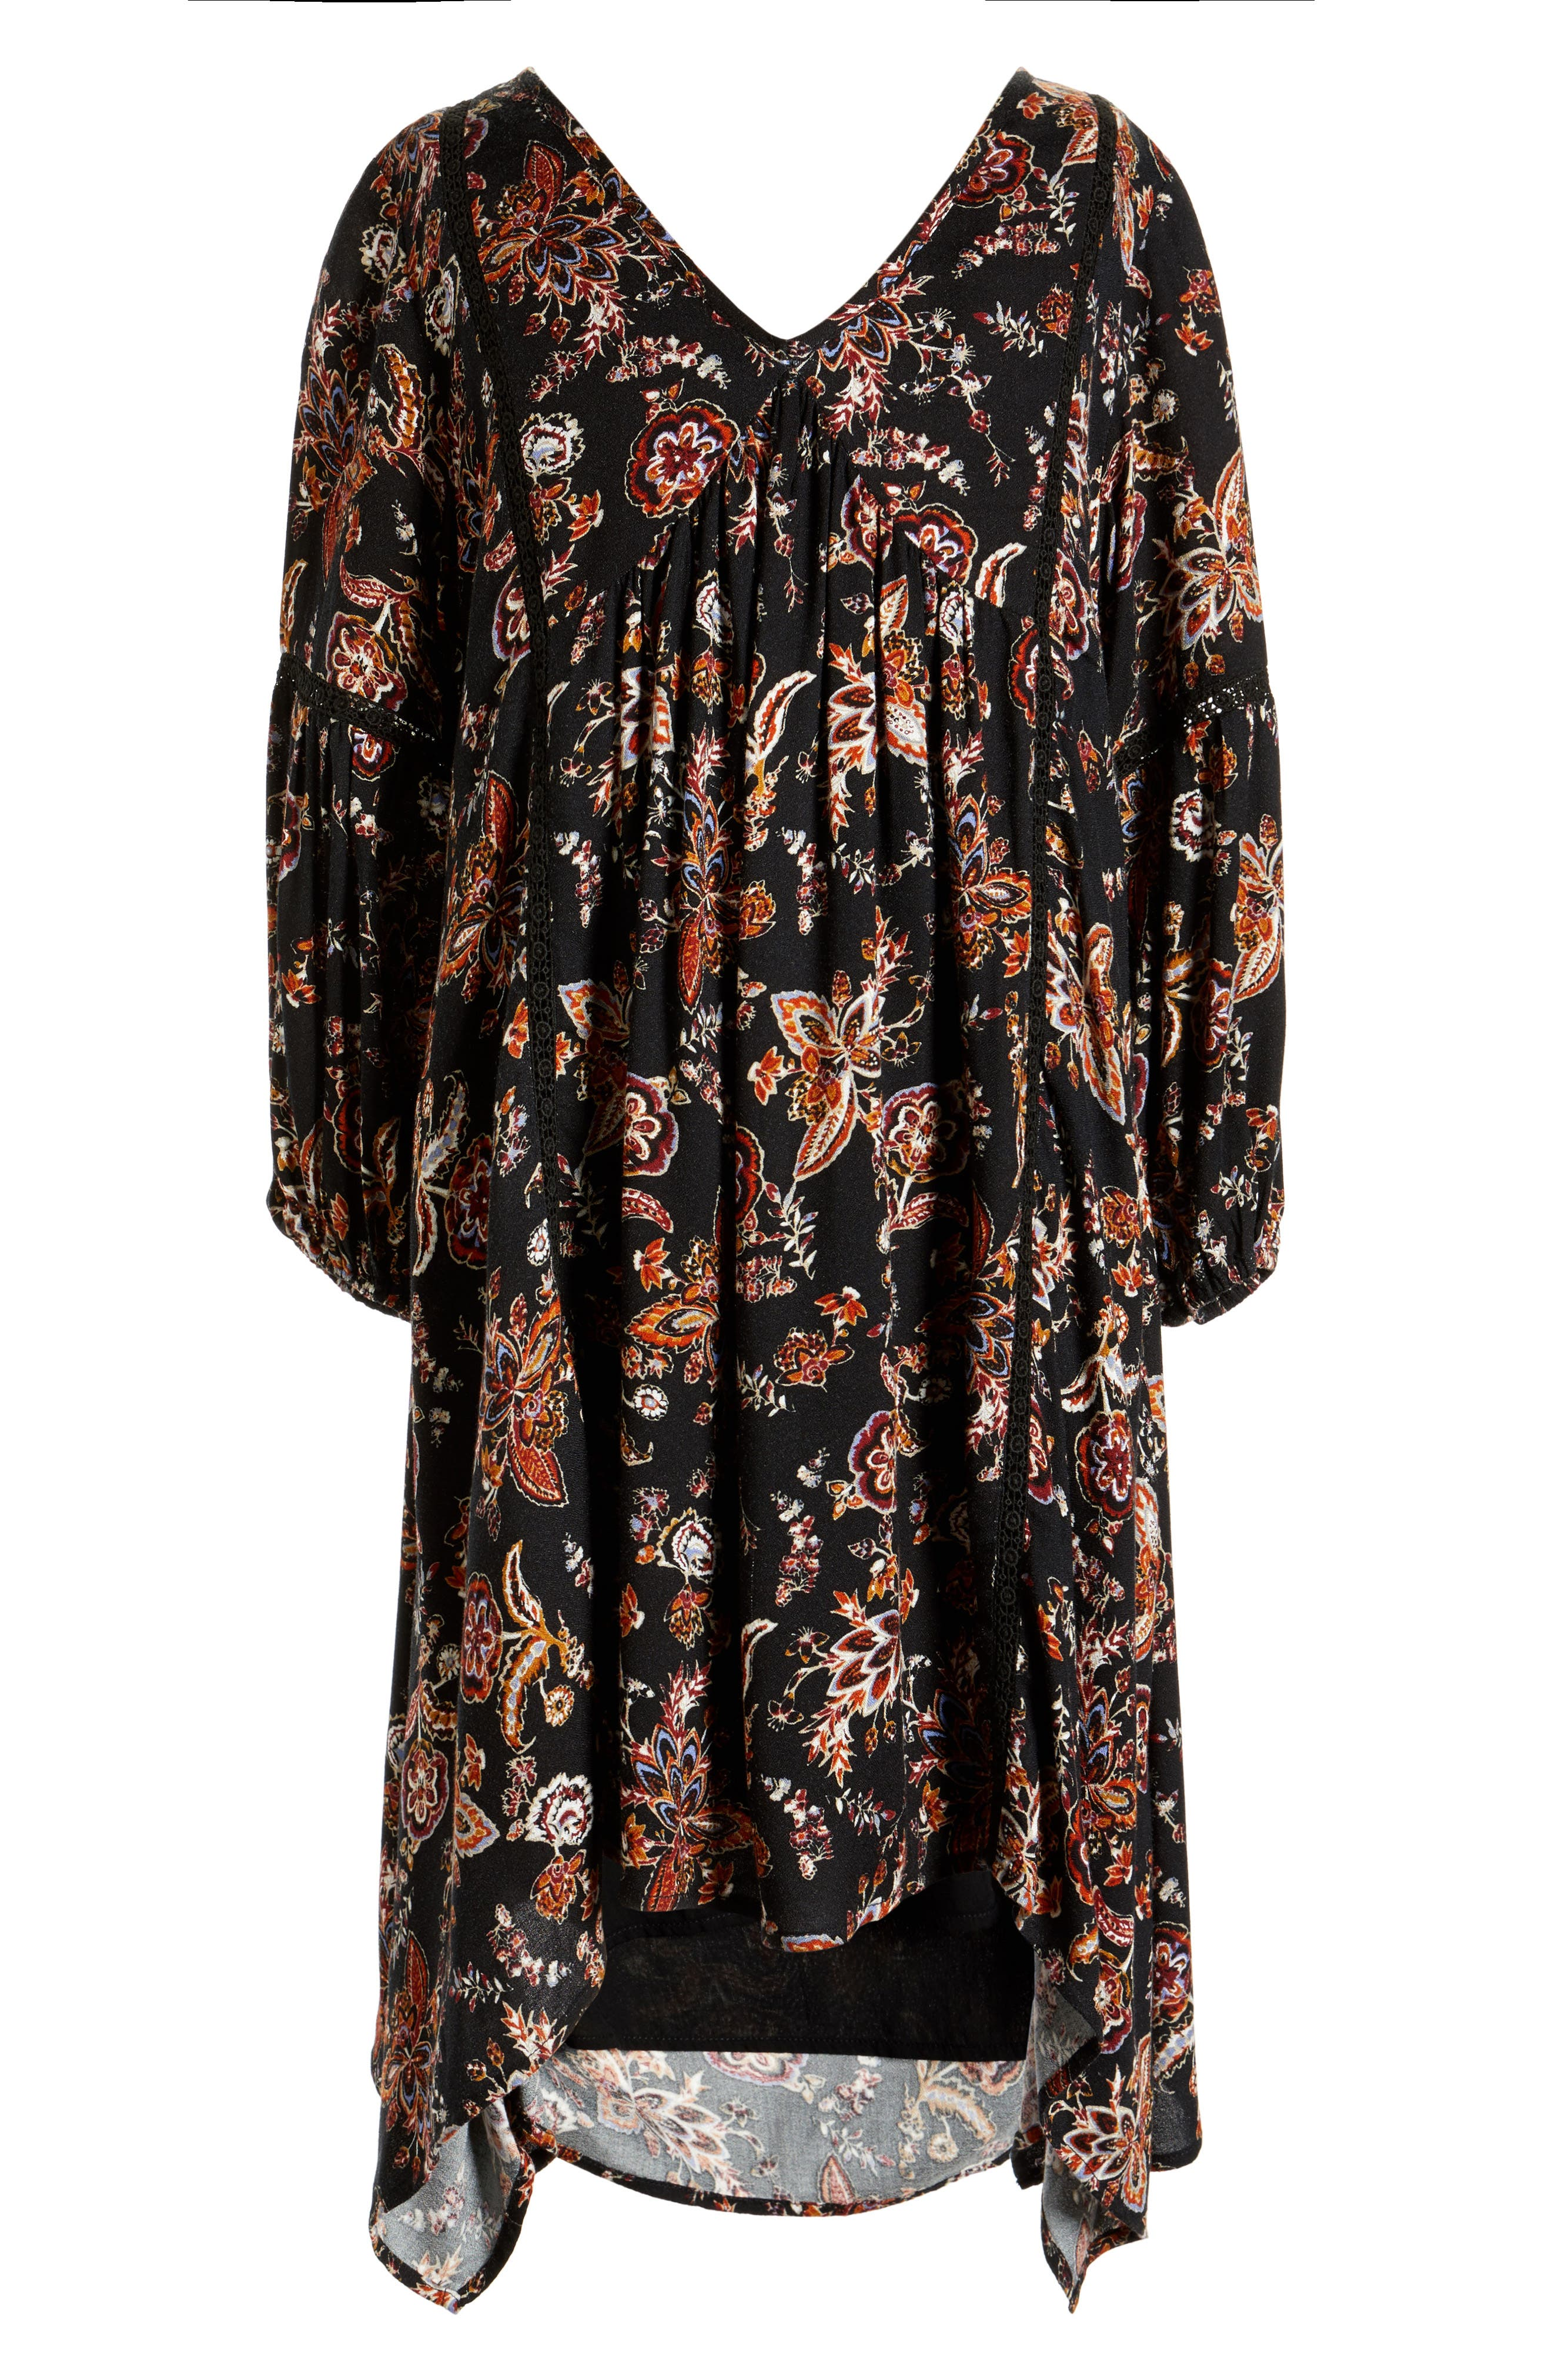 Alternate Image 1 Selected - For All Seasons Floral Print Dress (Big Girls)